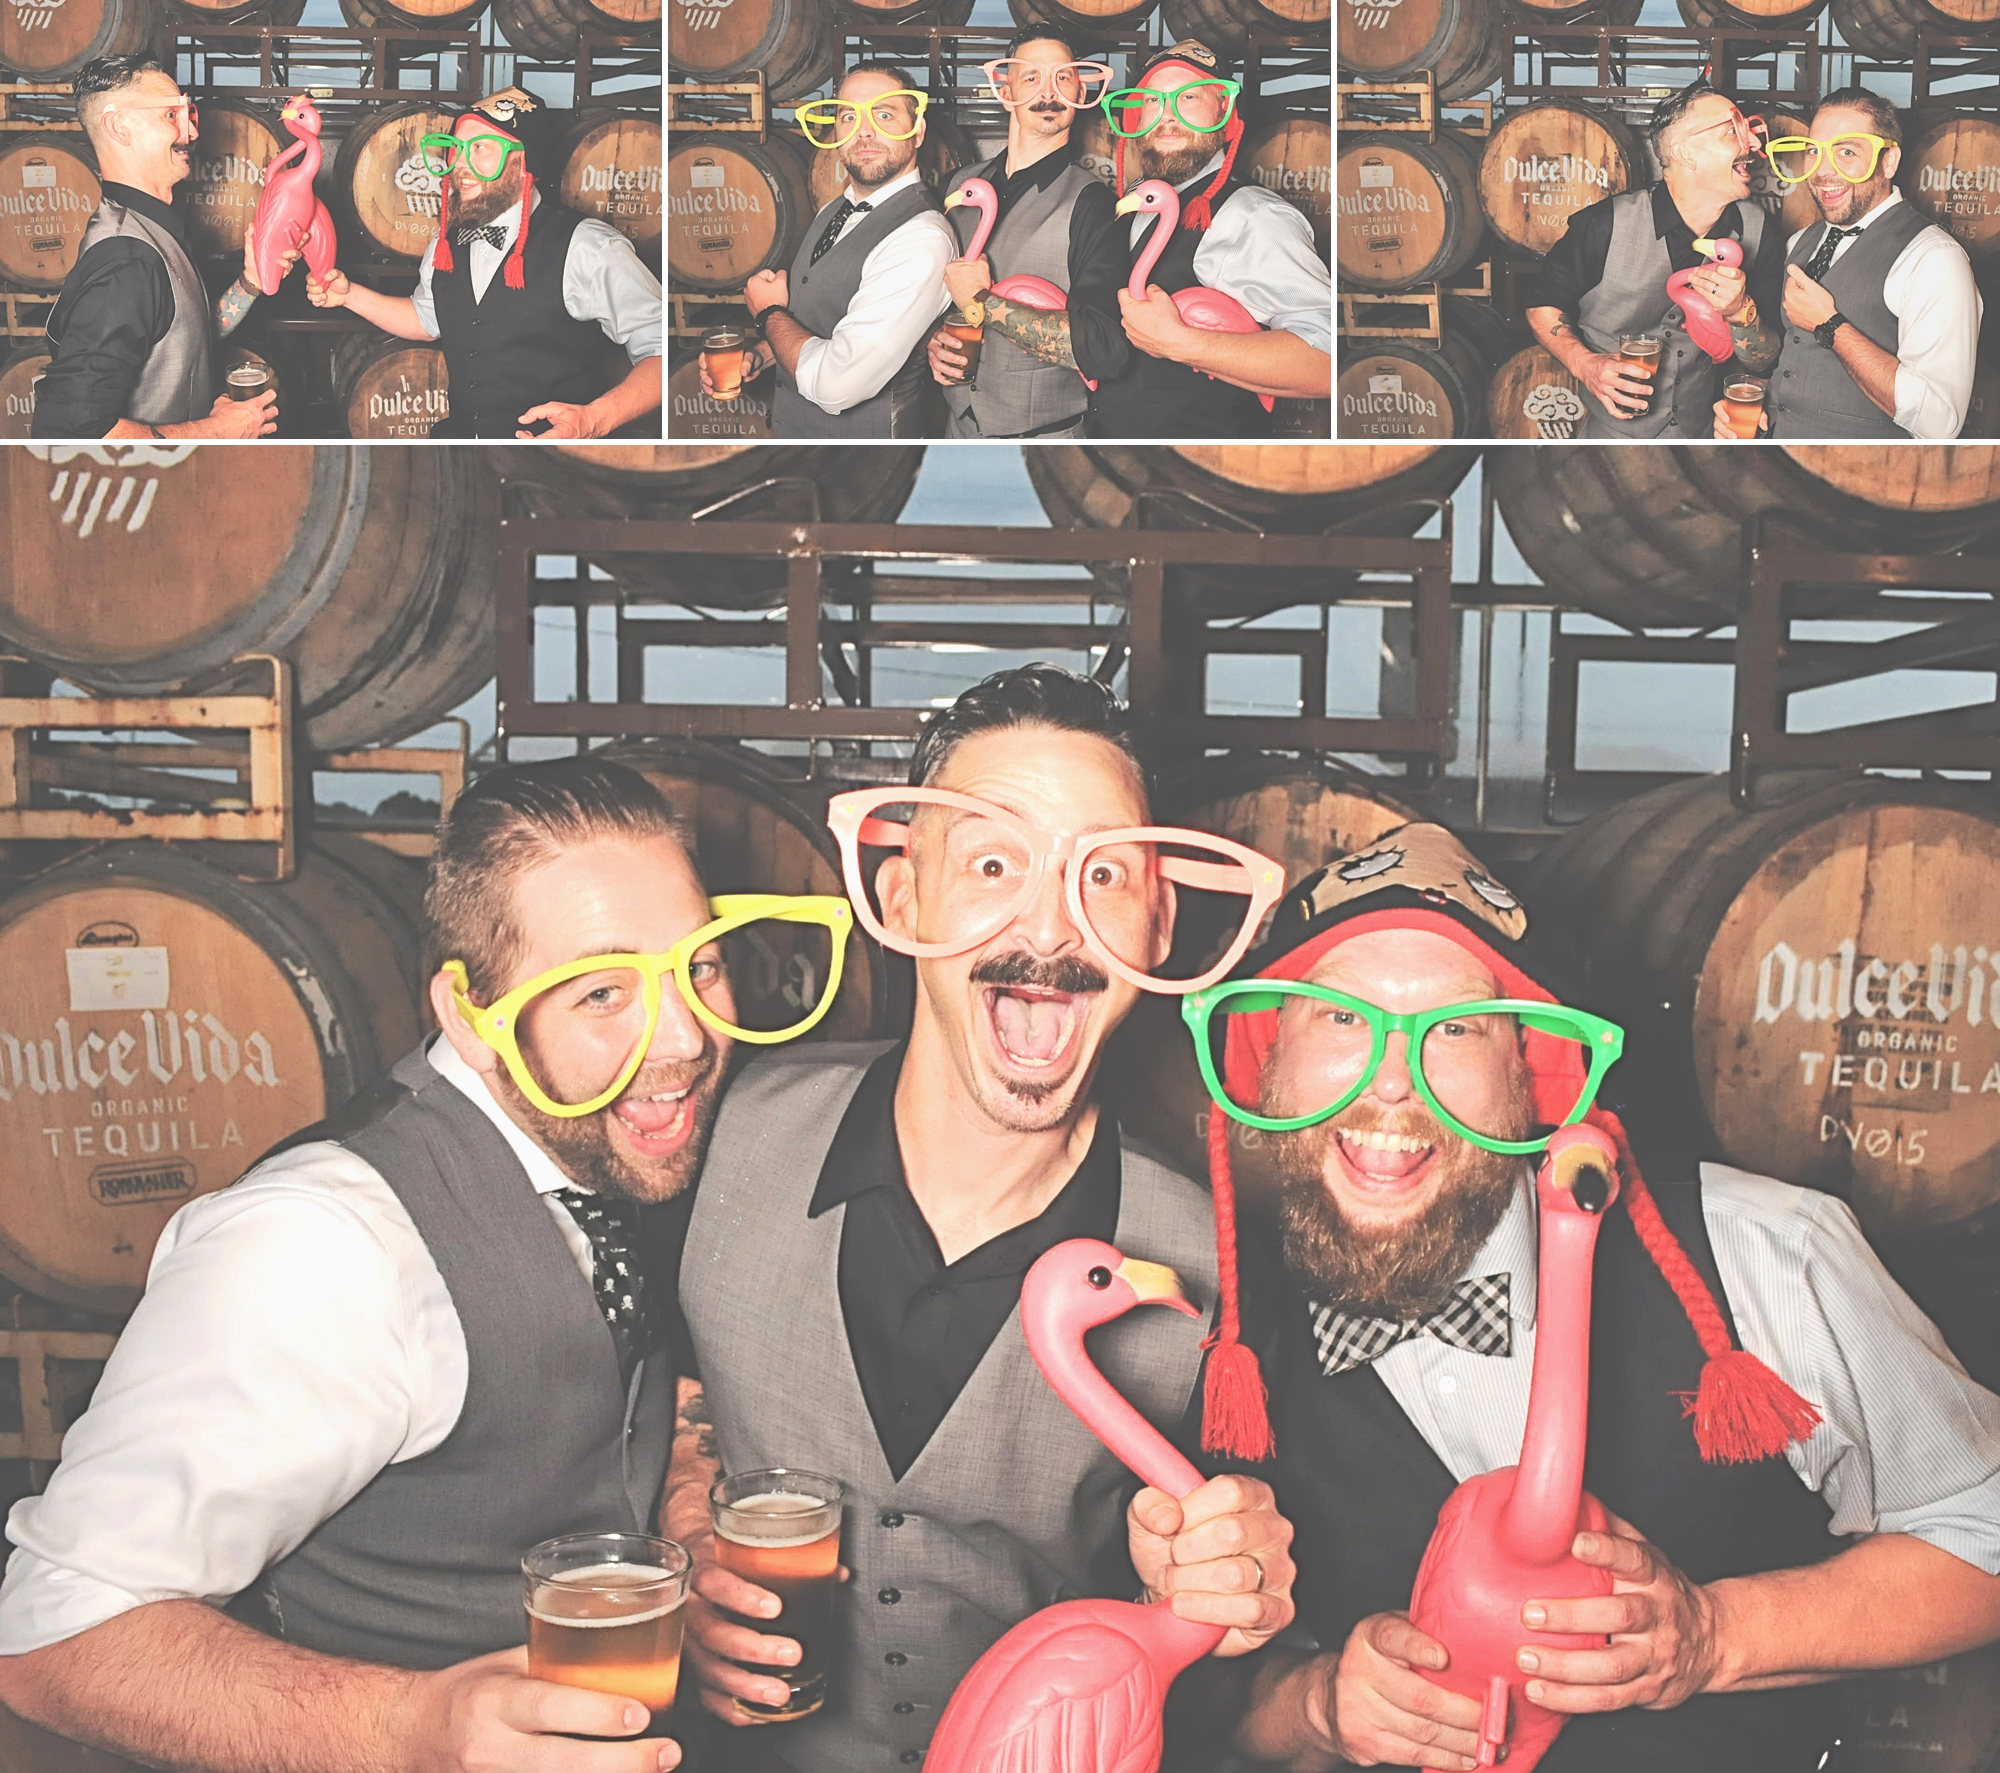 Atlanta Wild Heaven Craft Beers Brewery PhotoBooth - 10-Year Anniversary - RobotBooth 3